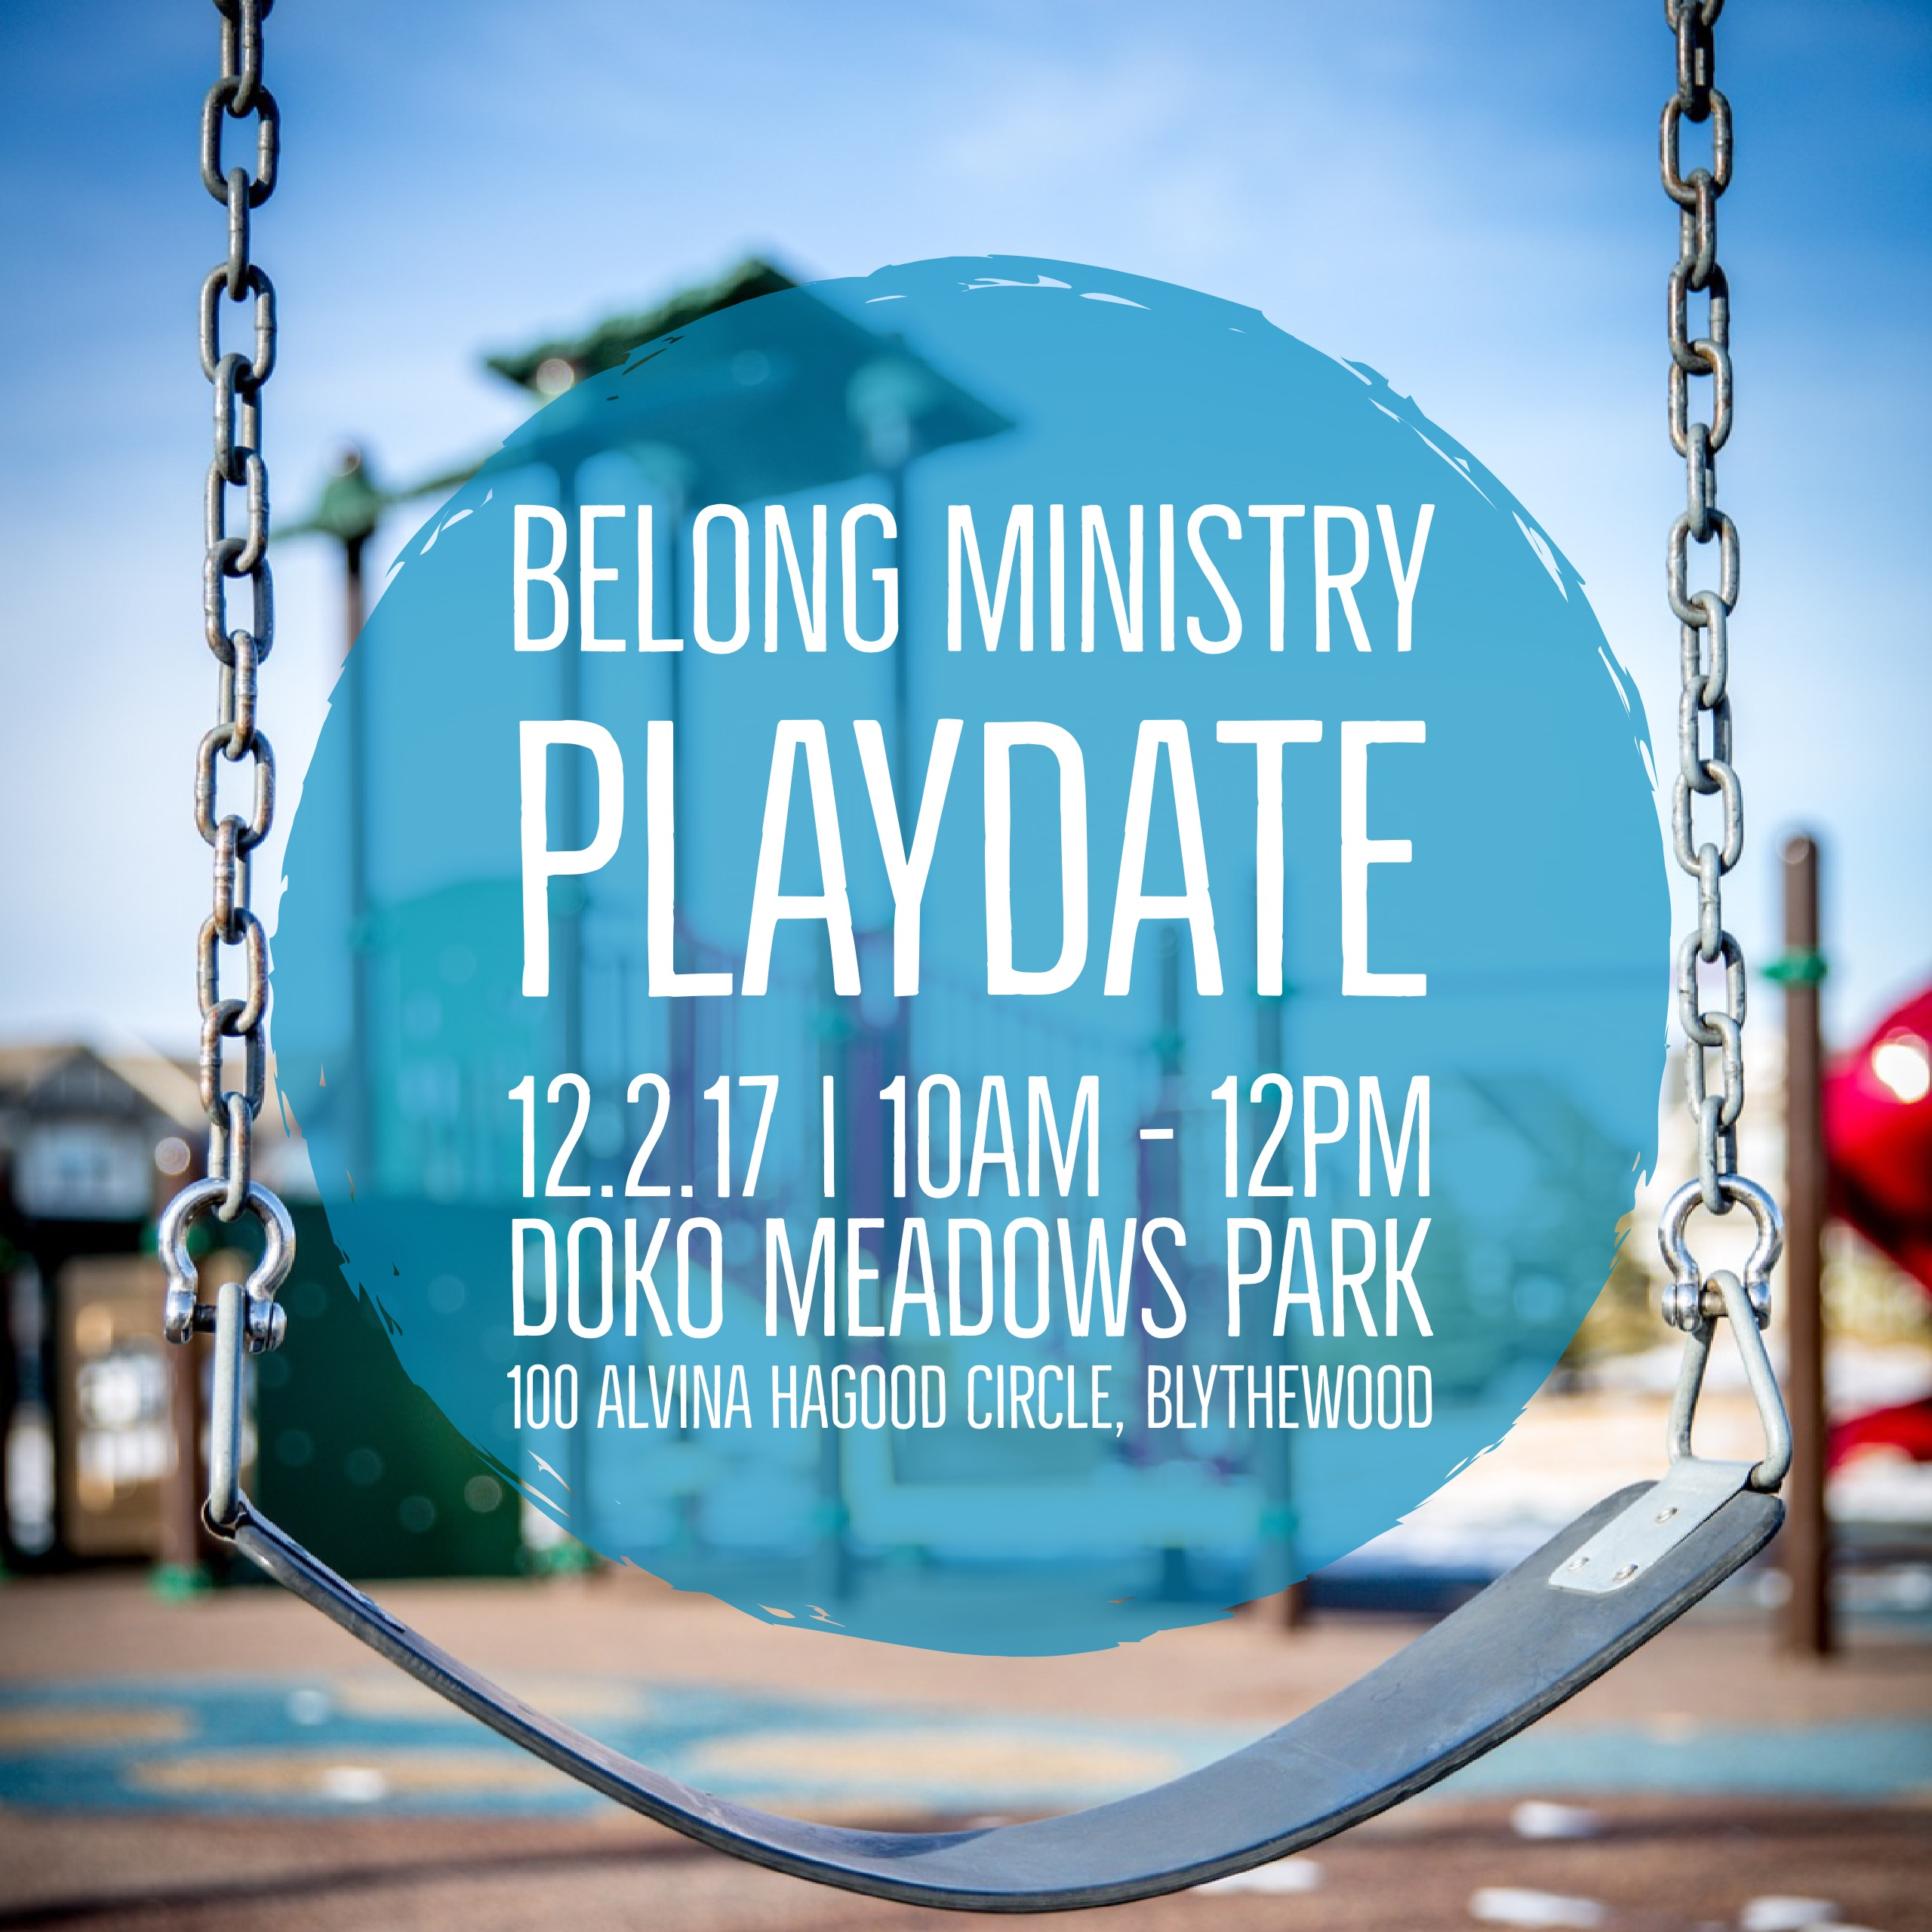 17.12.02 belong ministry playdate 2  instagram